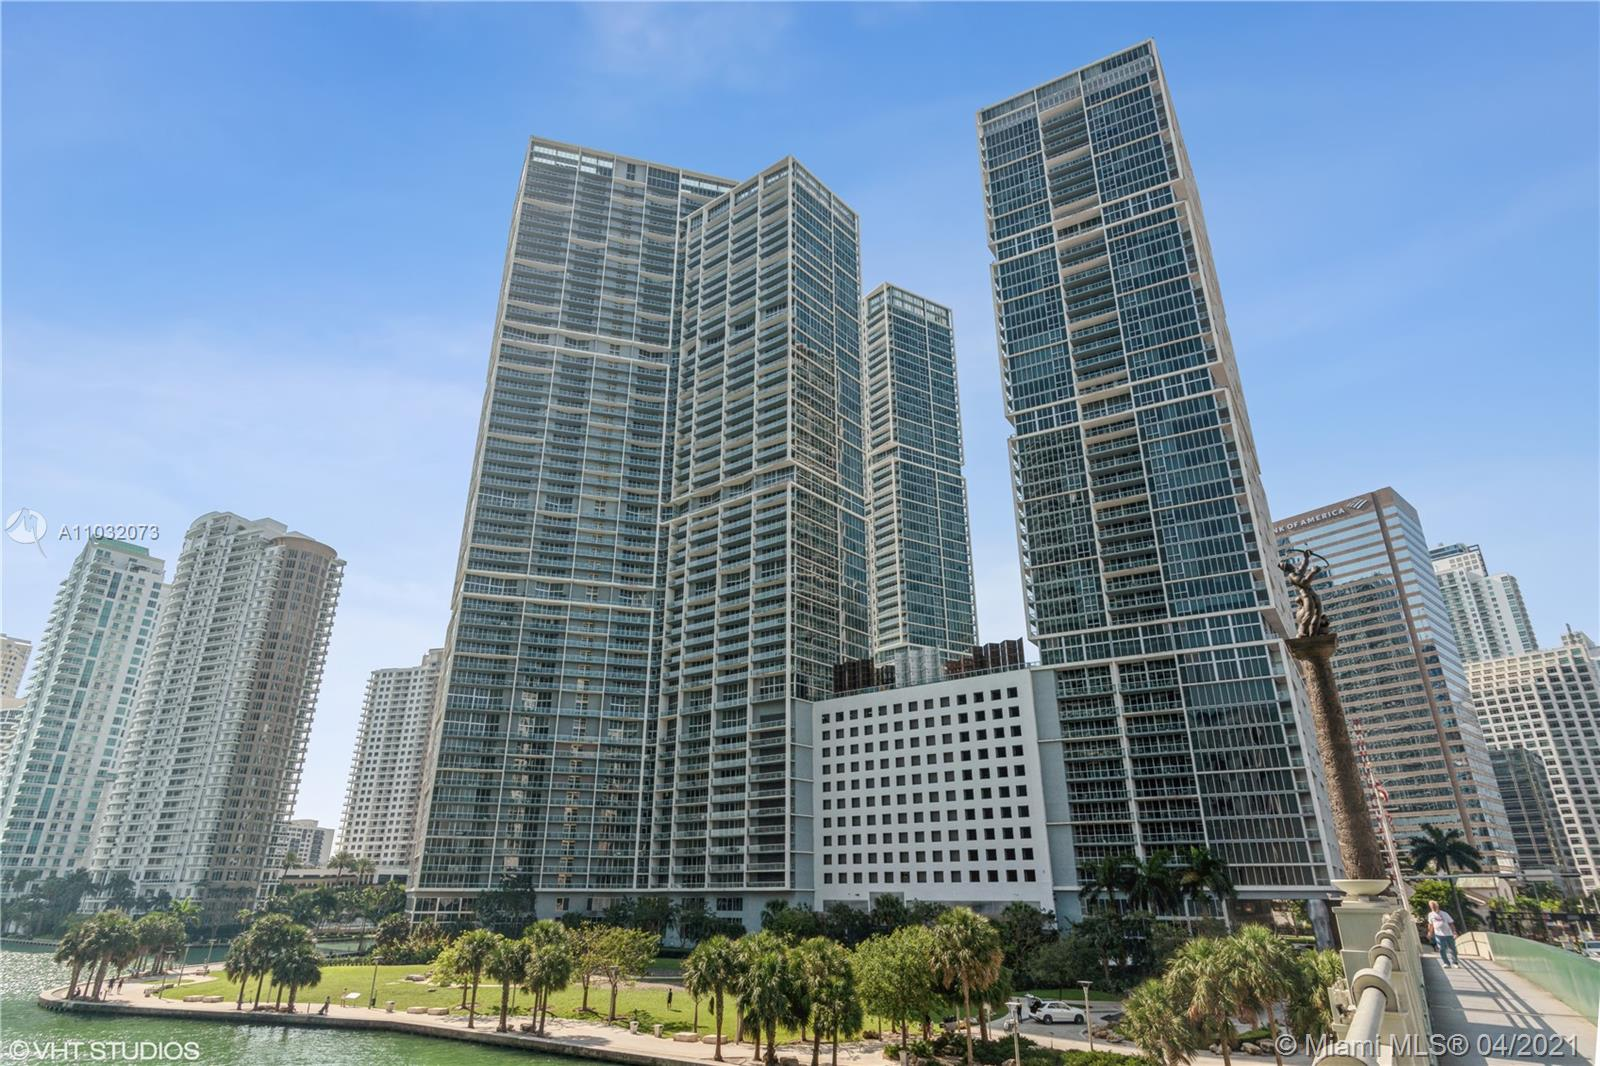 ICON BRICKELL NO TWO Condo,For Sale,ICON BRICKELL NO TWO Brickell,realty,broker,condos near me